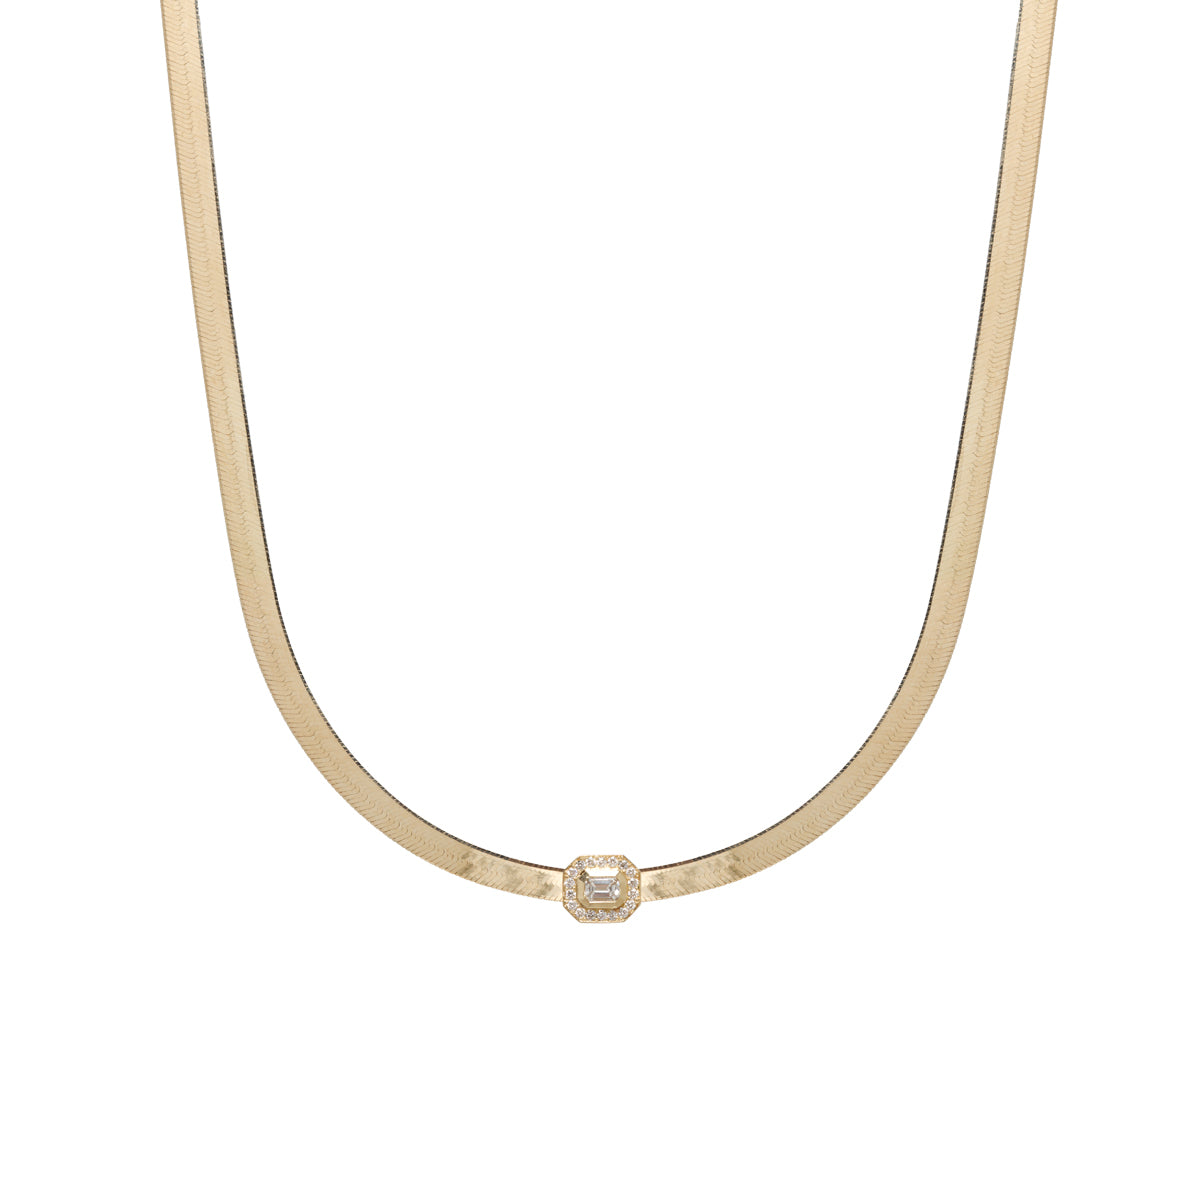 14k gold herringbone chain necklace with emerald diamond slide